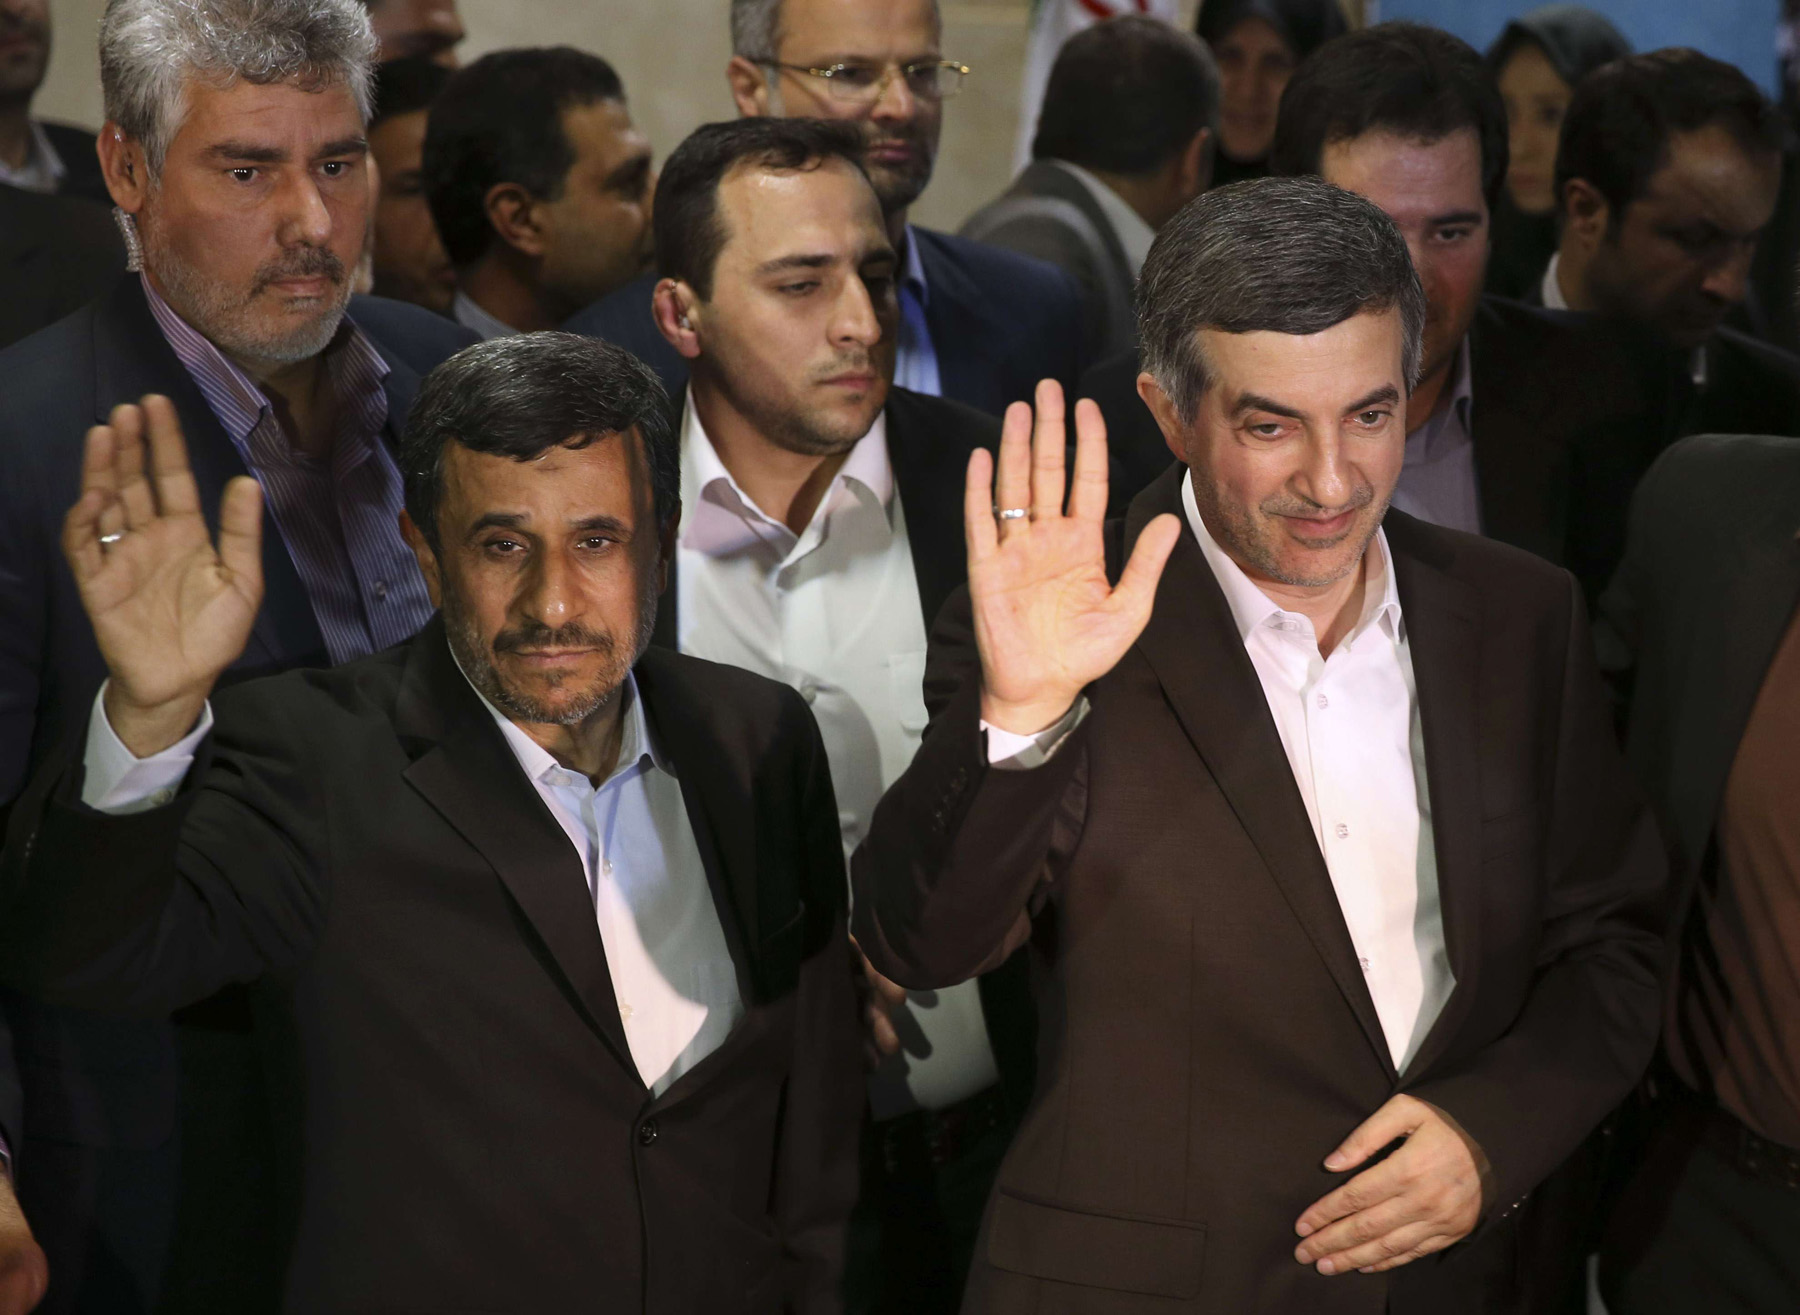 A 2013 file picture shows former Iranian President Mahmoud Ahmadinejad (L) and his close ally Esfandiar Rahim Mashaei in Tehran.                                                                                  (AP)